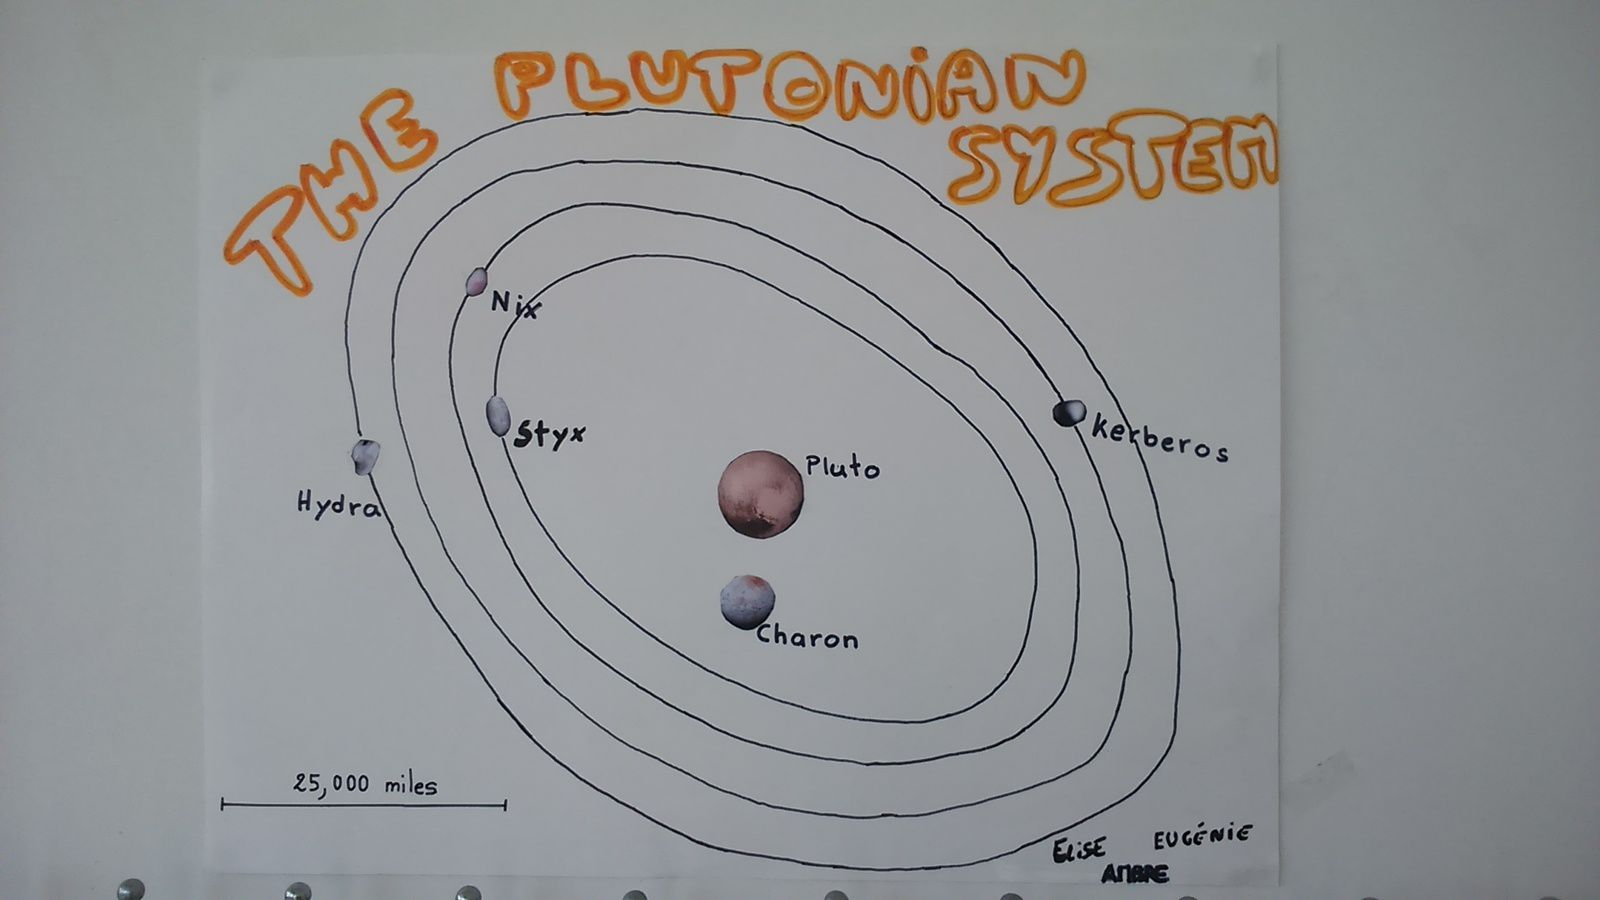 Let's talk about Pluto!  - 2